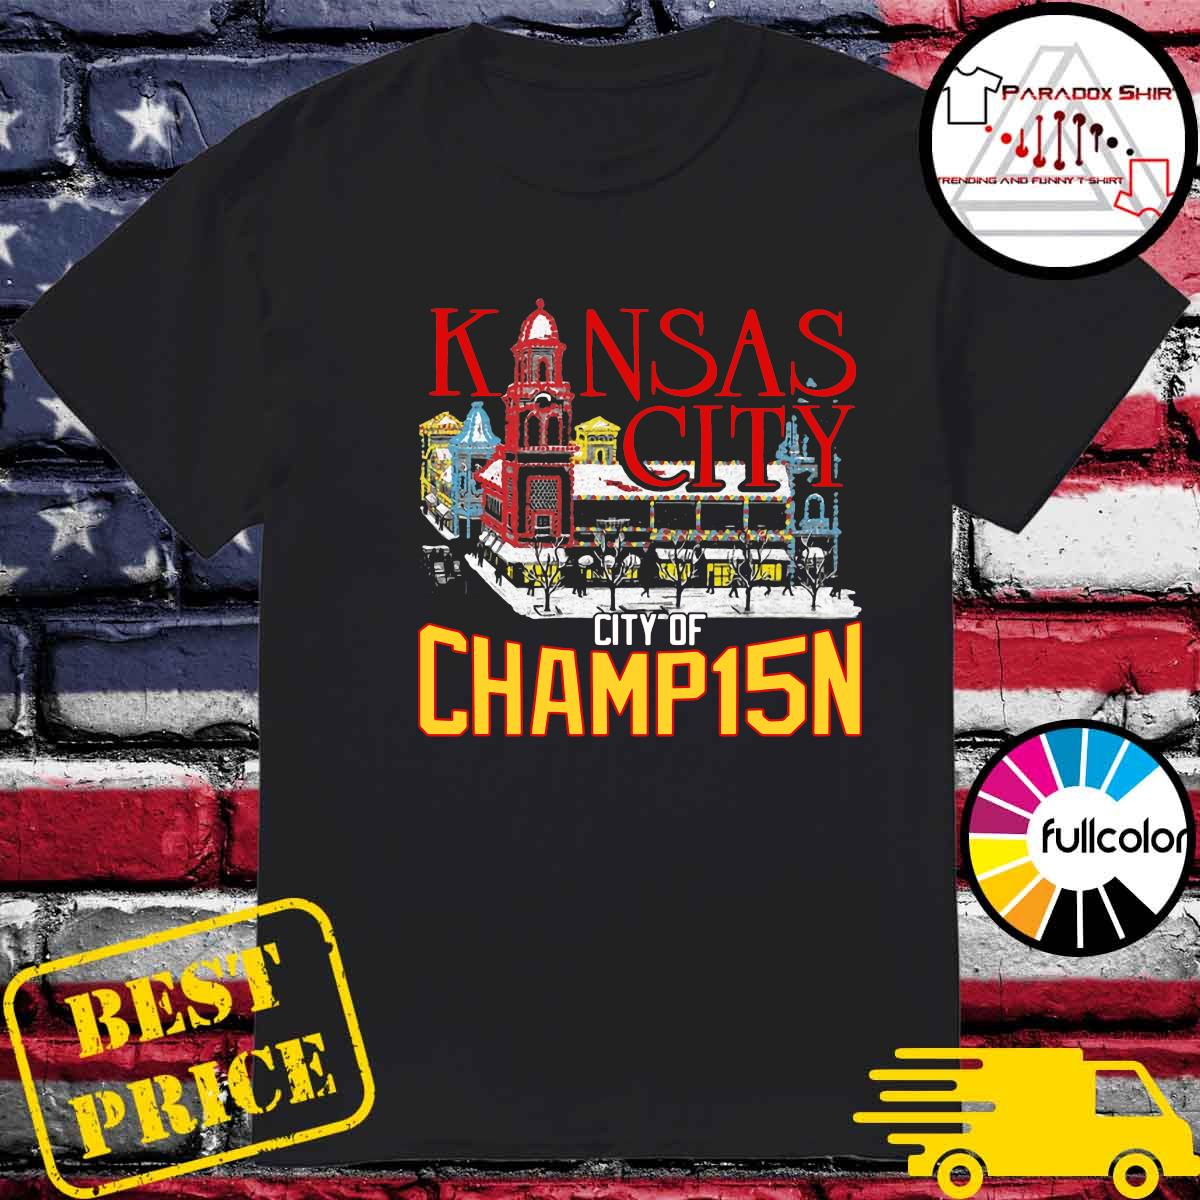 Kansas City City Of Champ15n Shirt